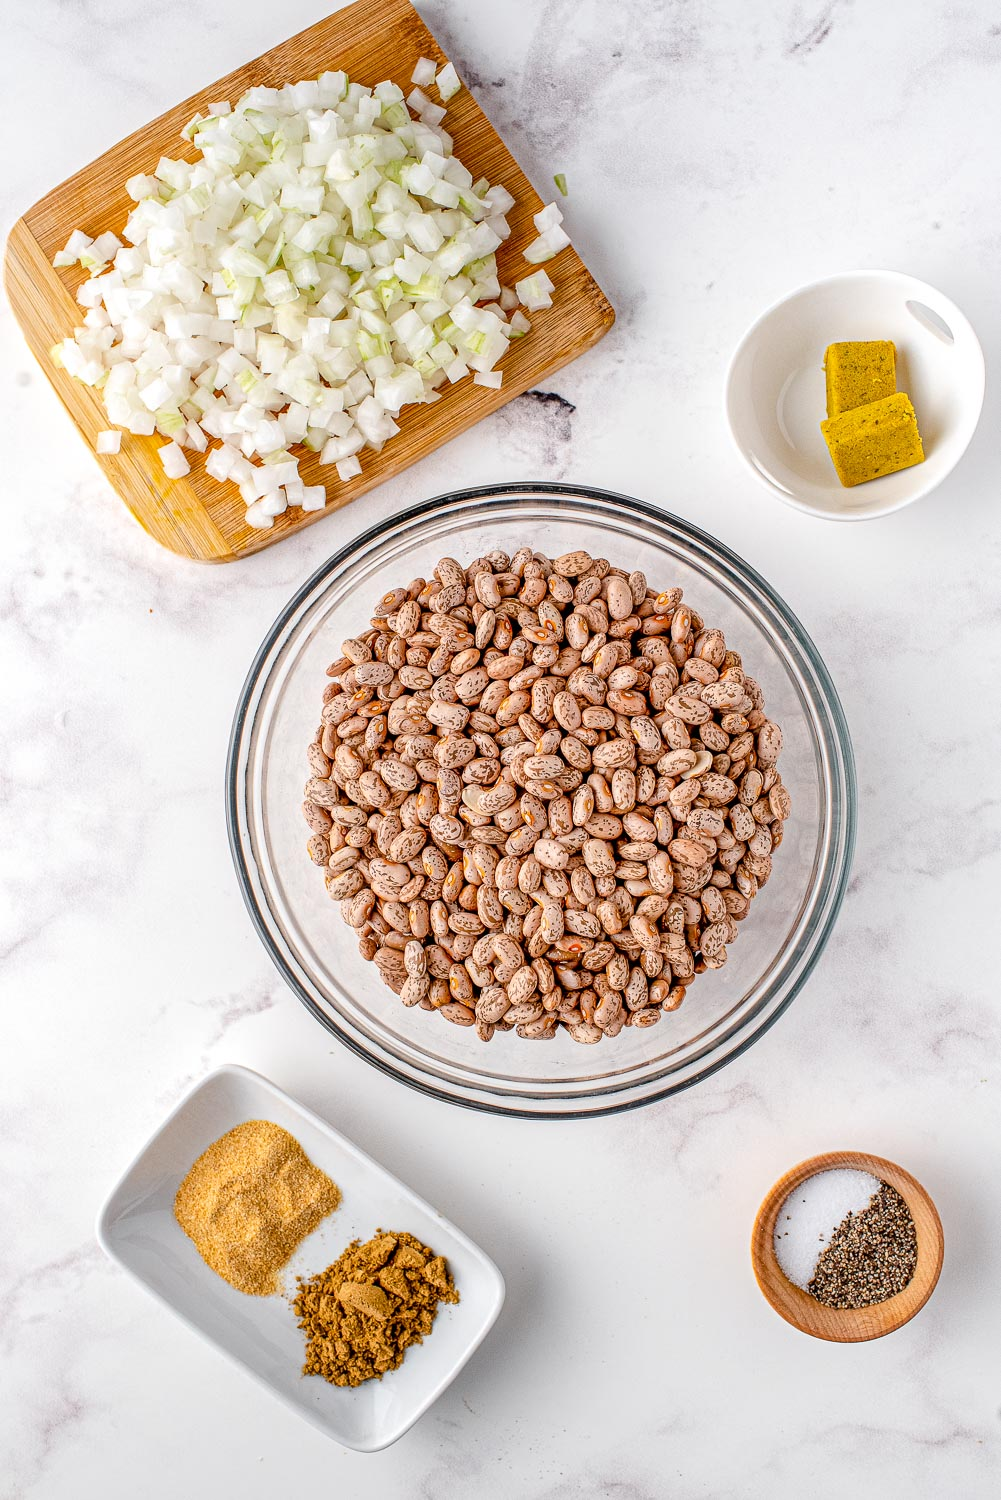 All of the ingredients needed to make this Refried Beans recipe.